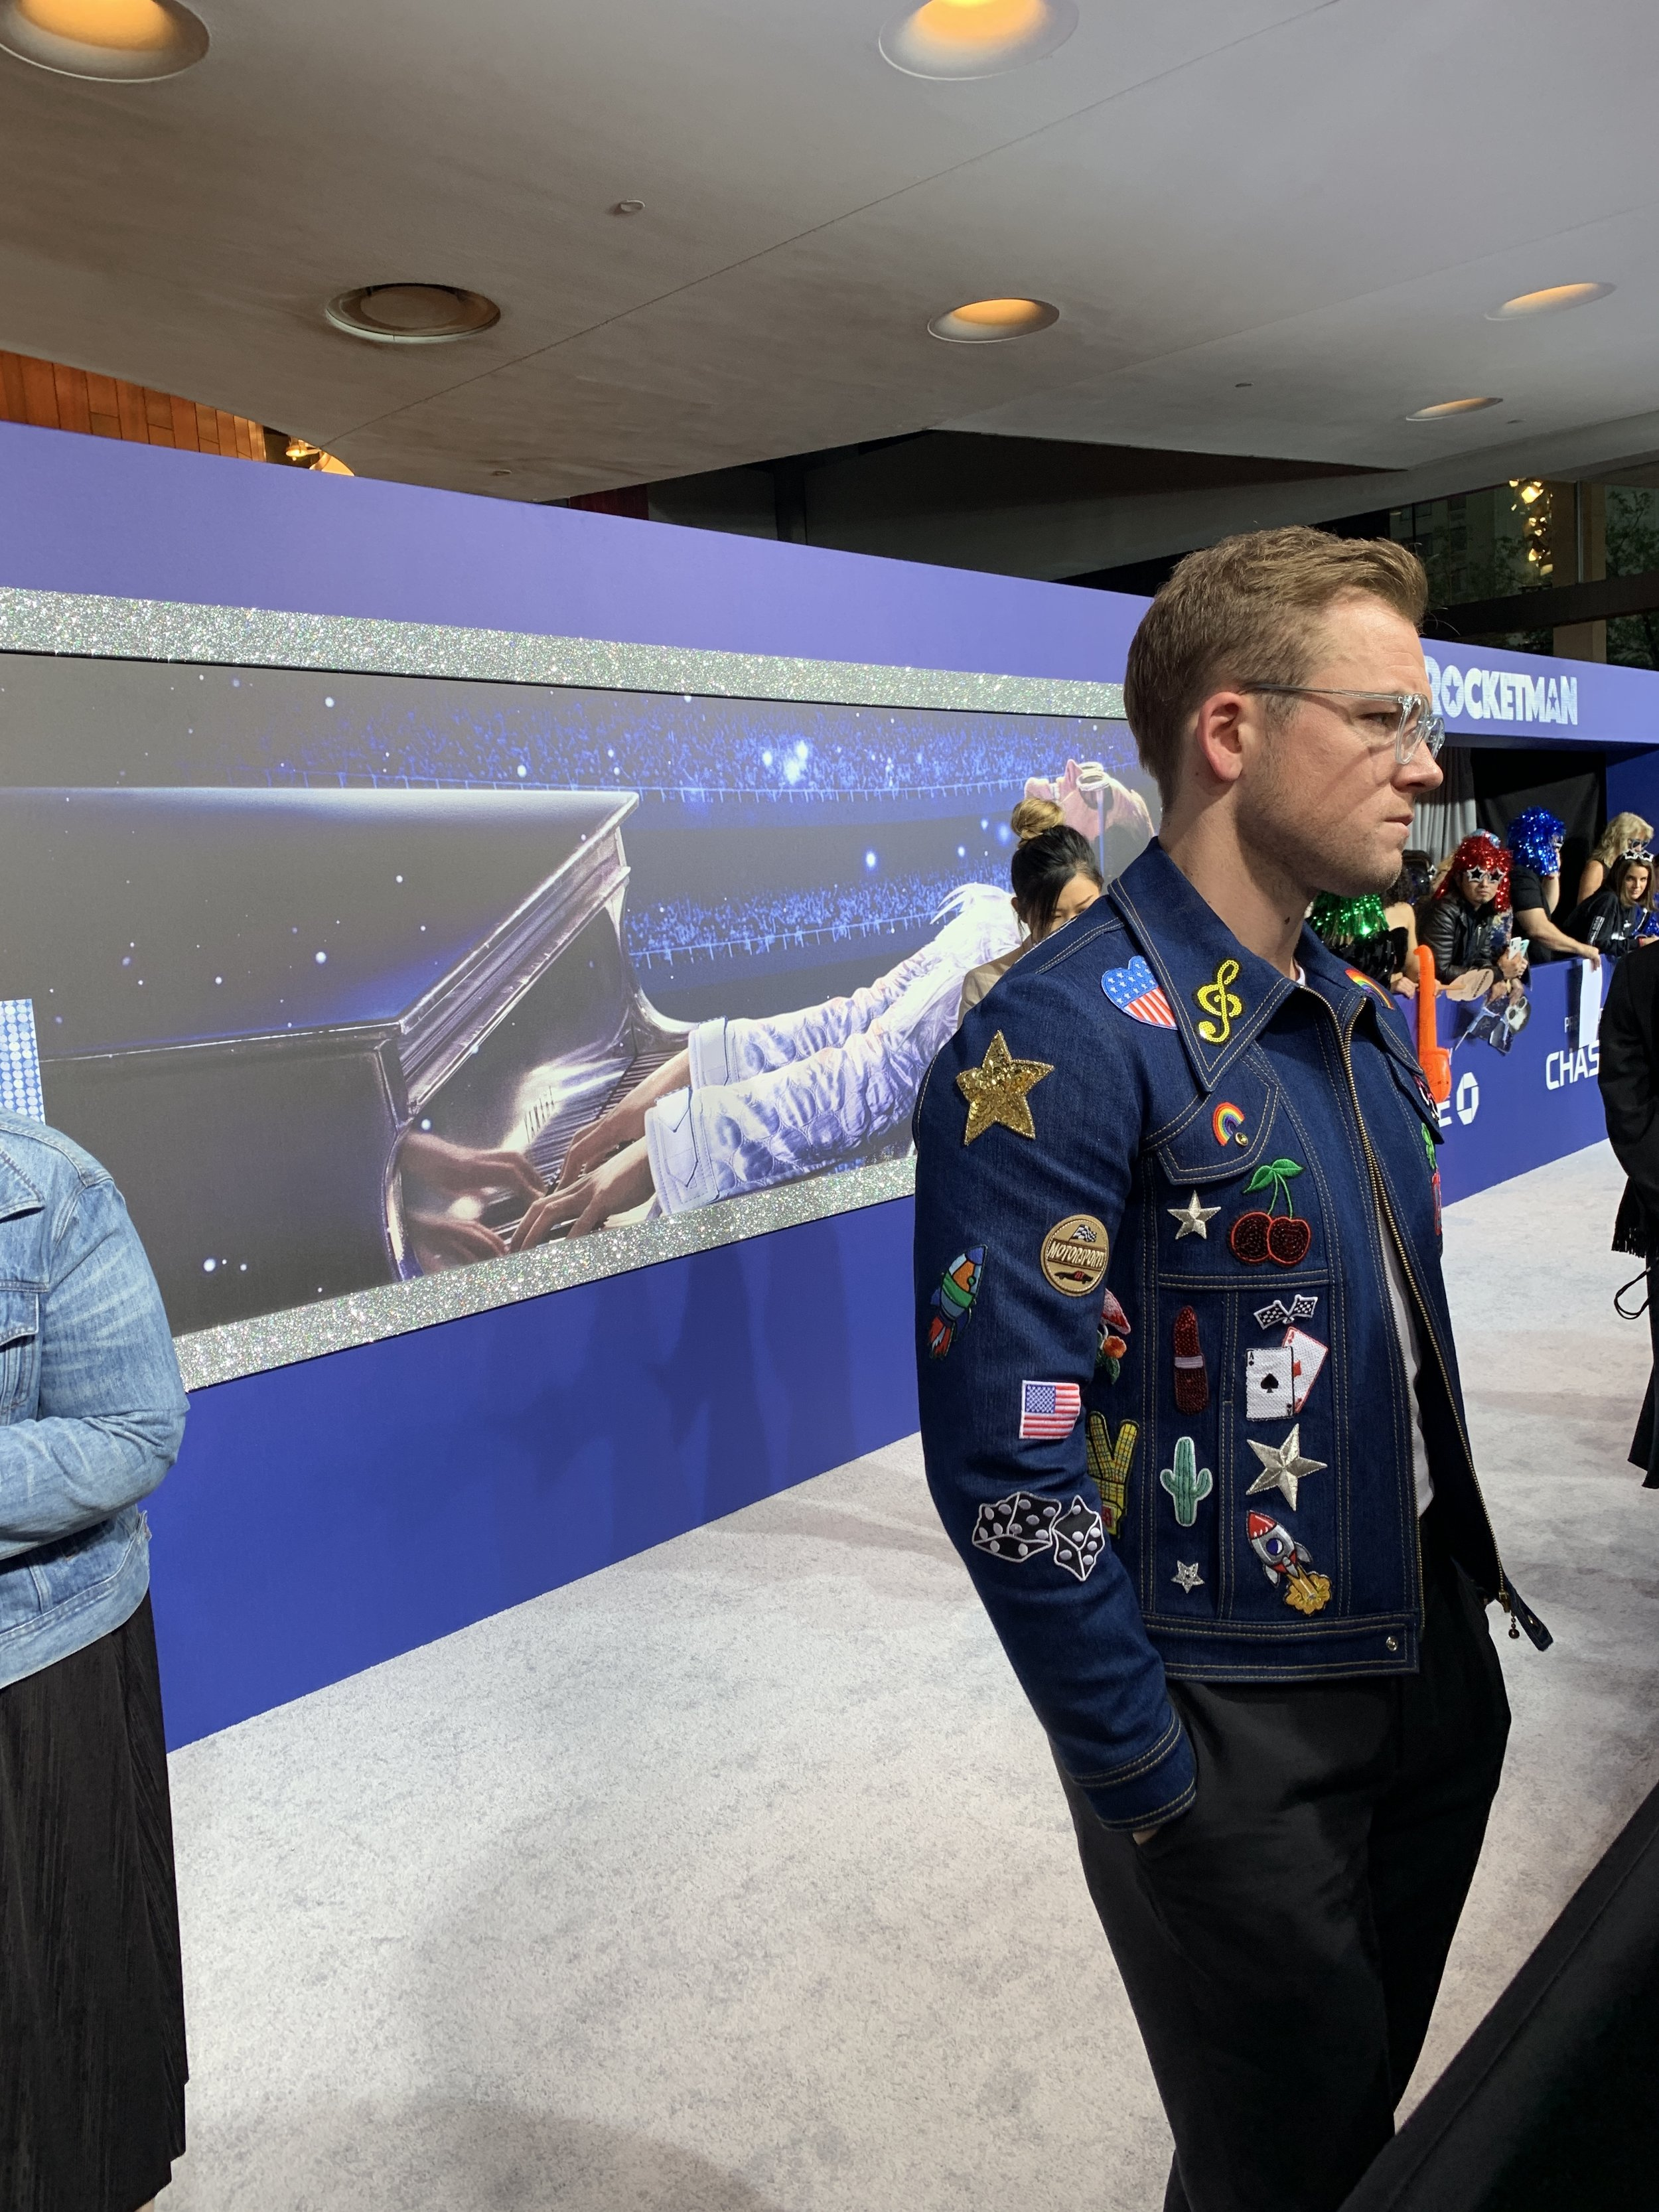 the star of rocketman, taron egerton! - The star of Rocketman, Taron Egerton, made his way down the red carpet at the NYC premiere of the new Elton John musical fantasty movie! George and his team were there to capture the action.